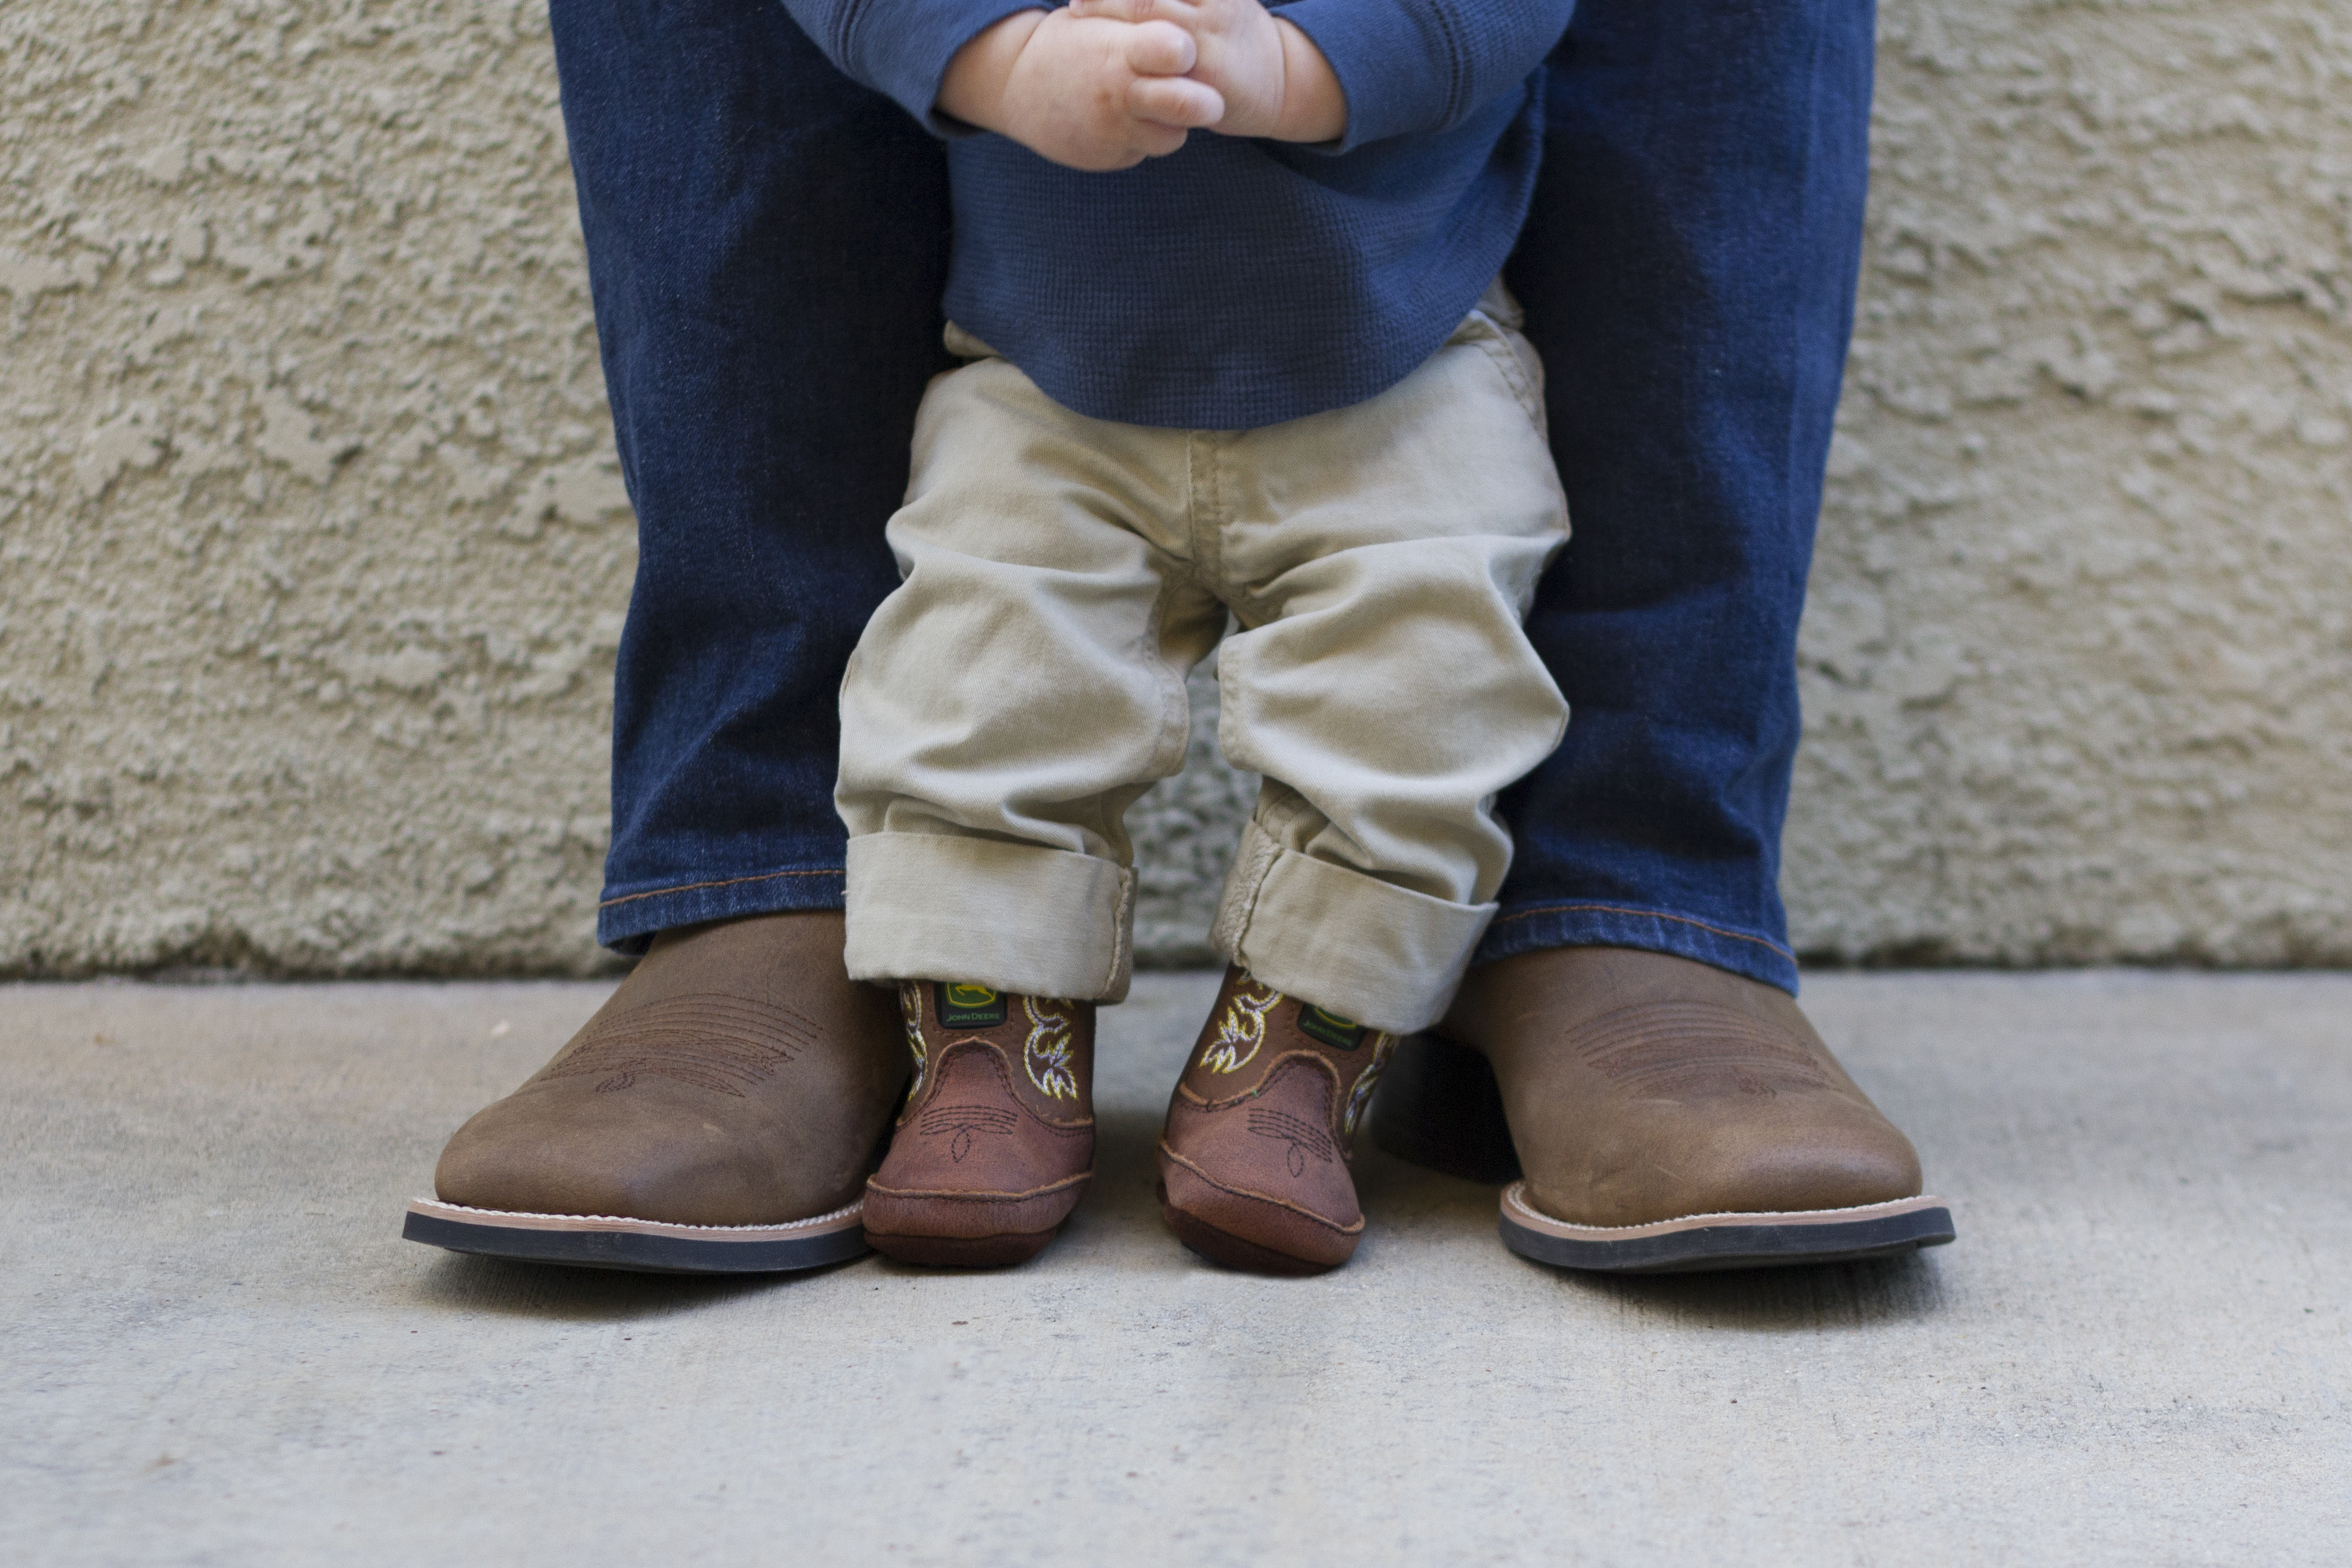 Daddy and Baby Boot Photo